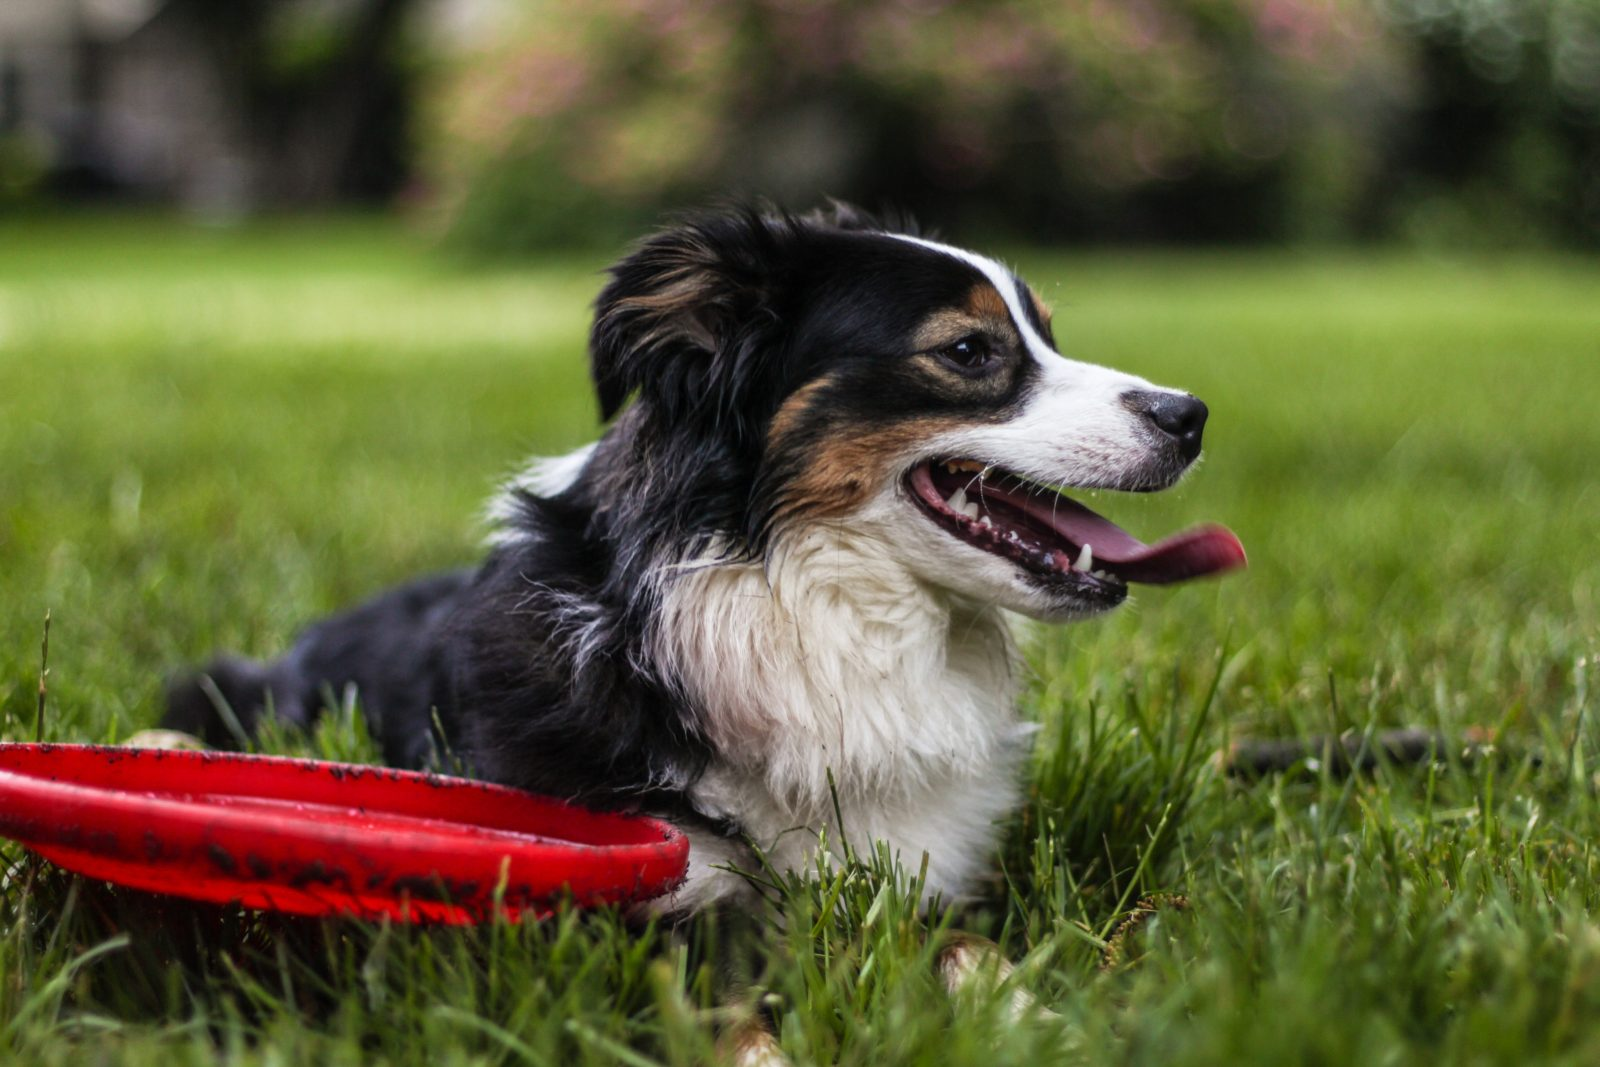 Garden Games To Play With Your Dog